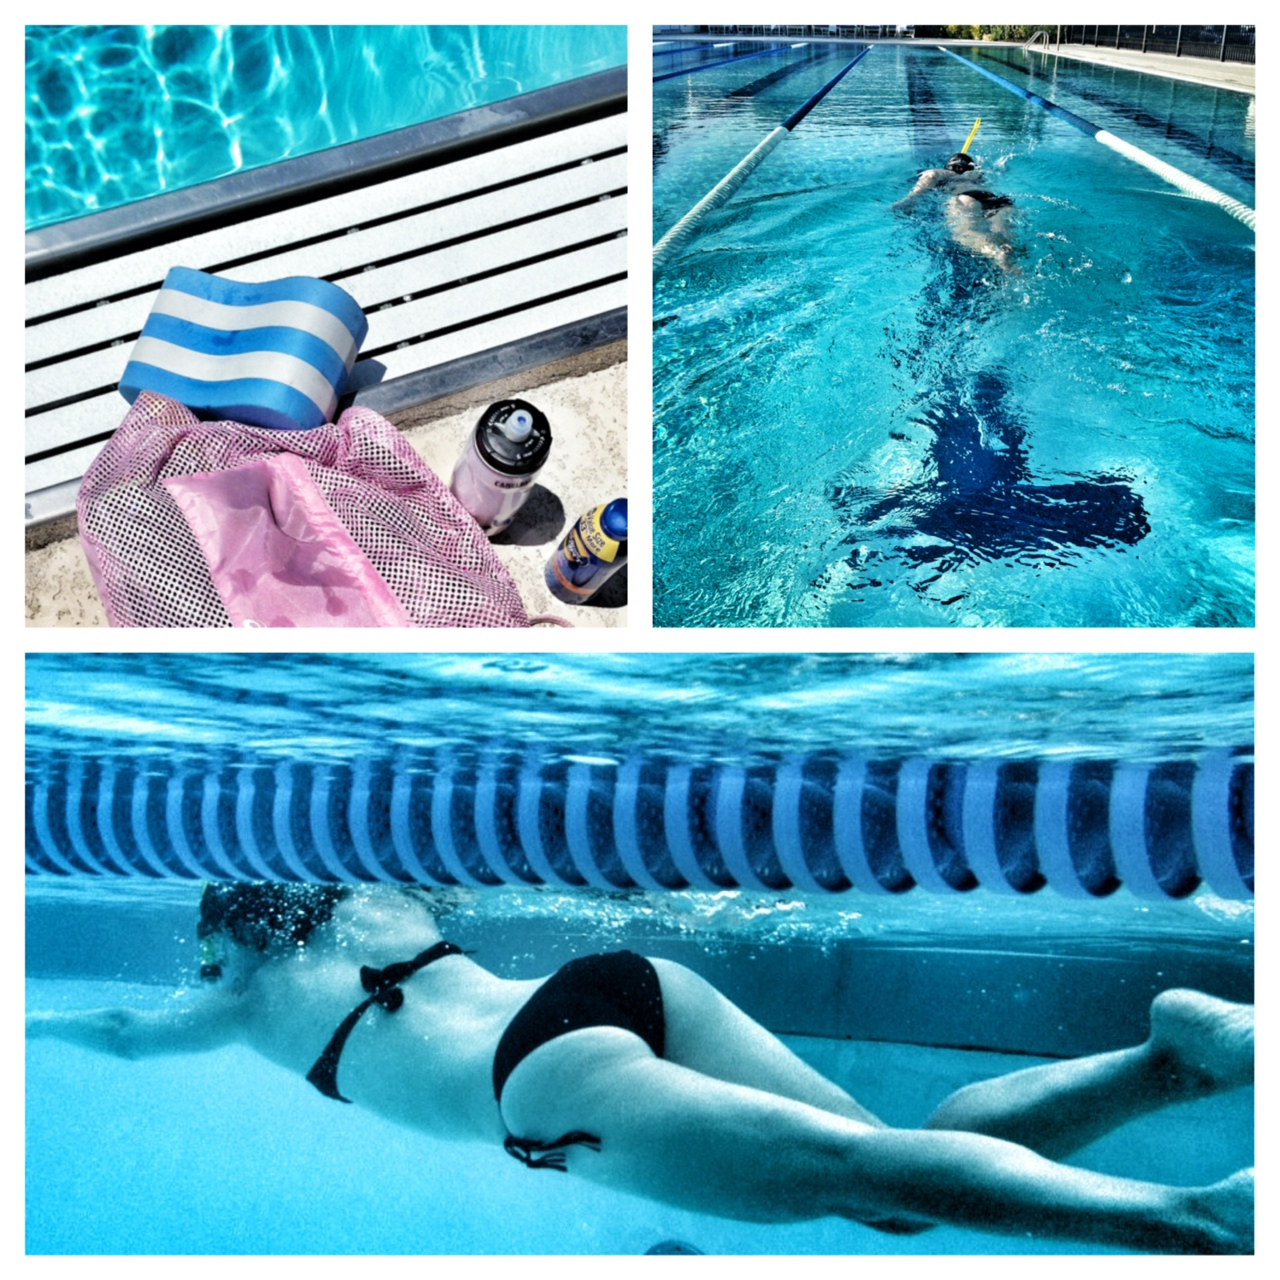 Pregnant, swimming newbie - snorkel and all...